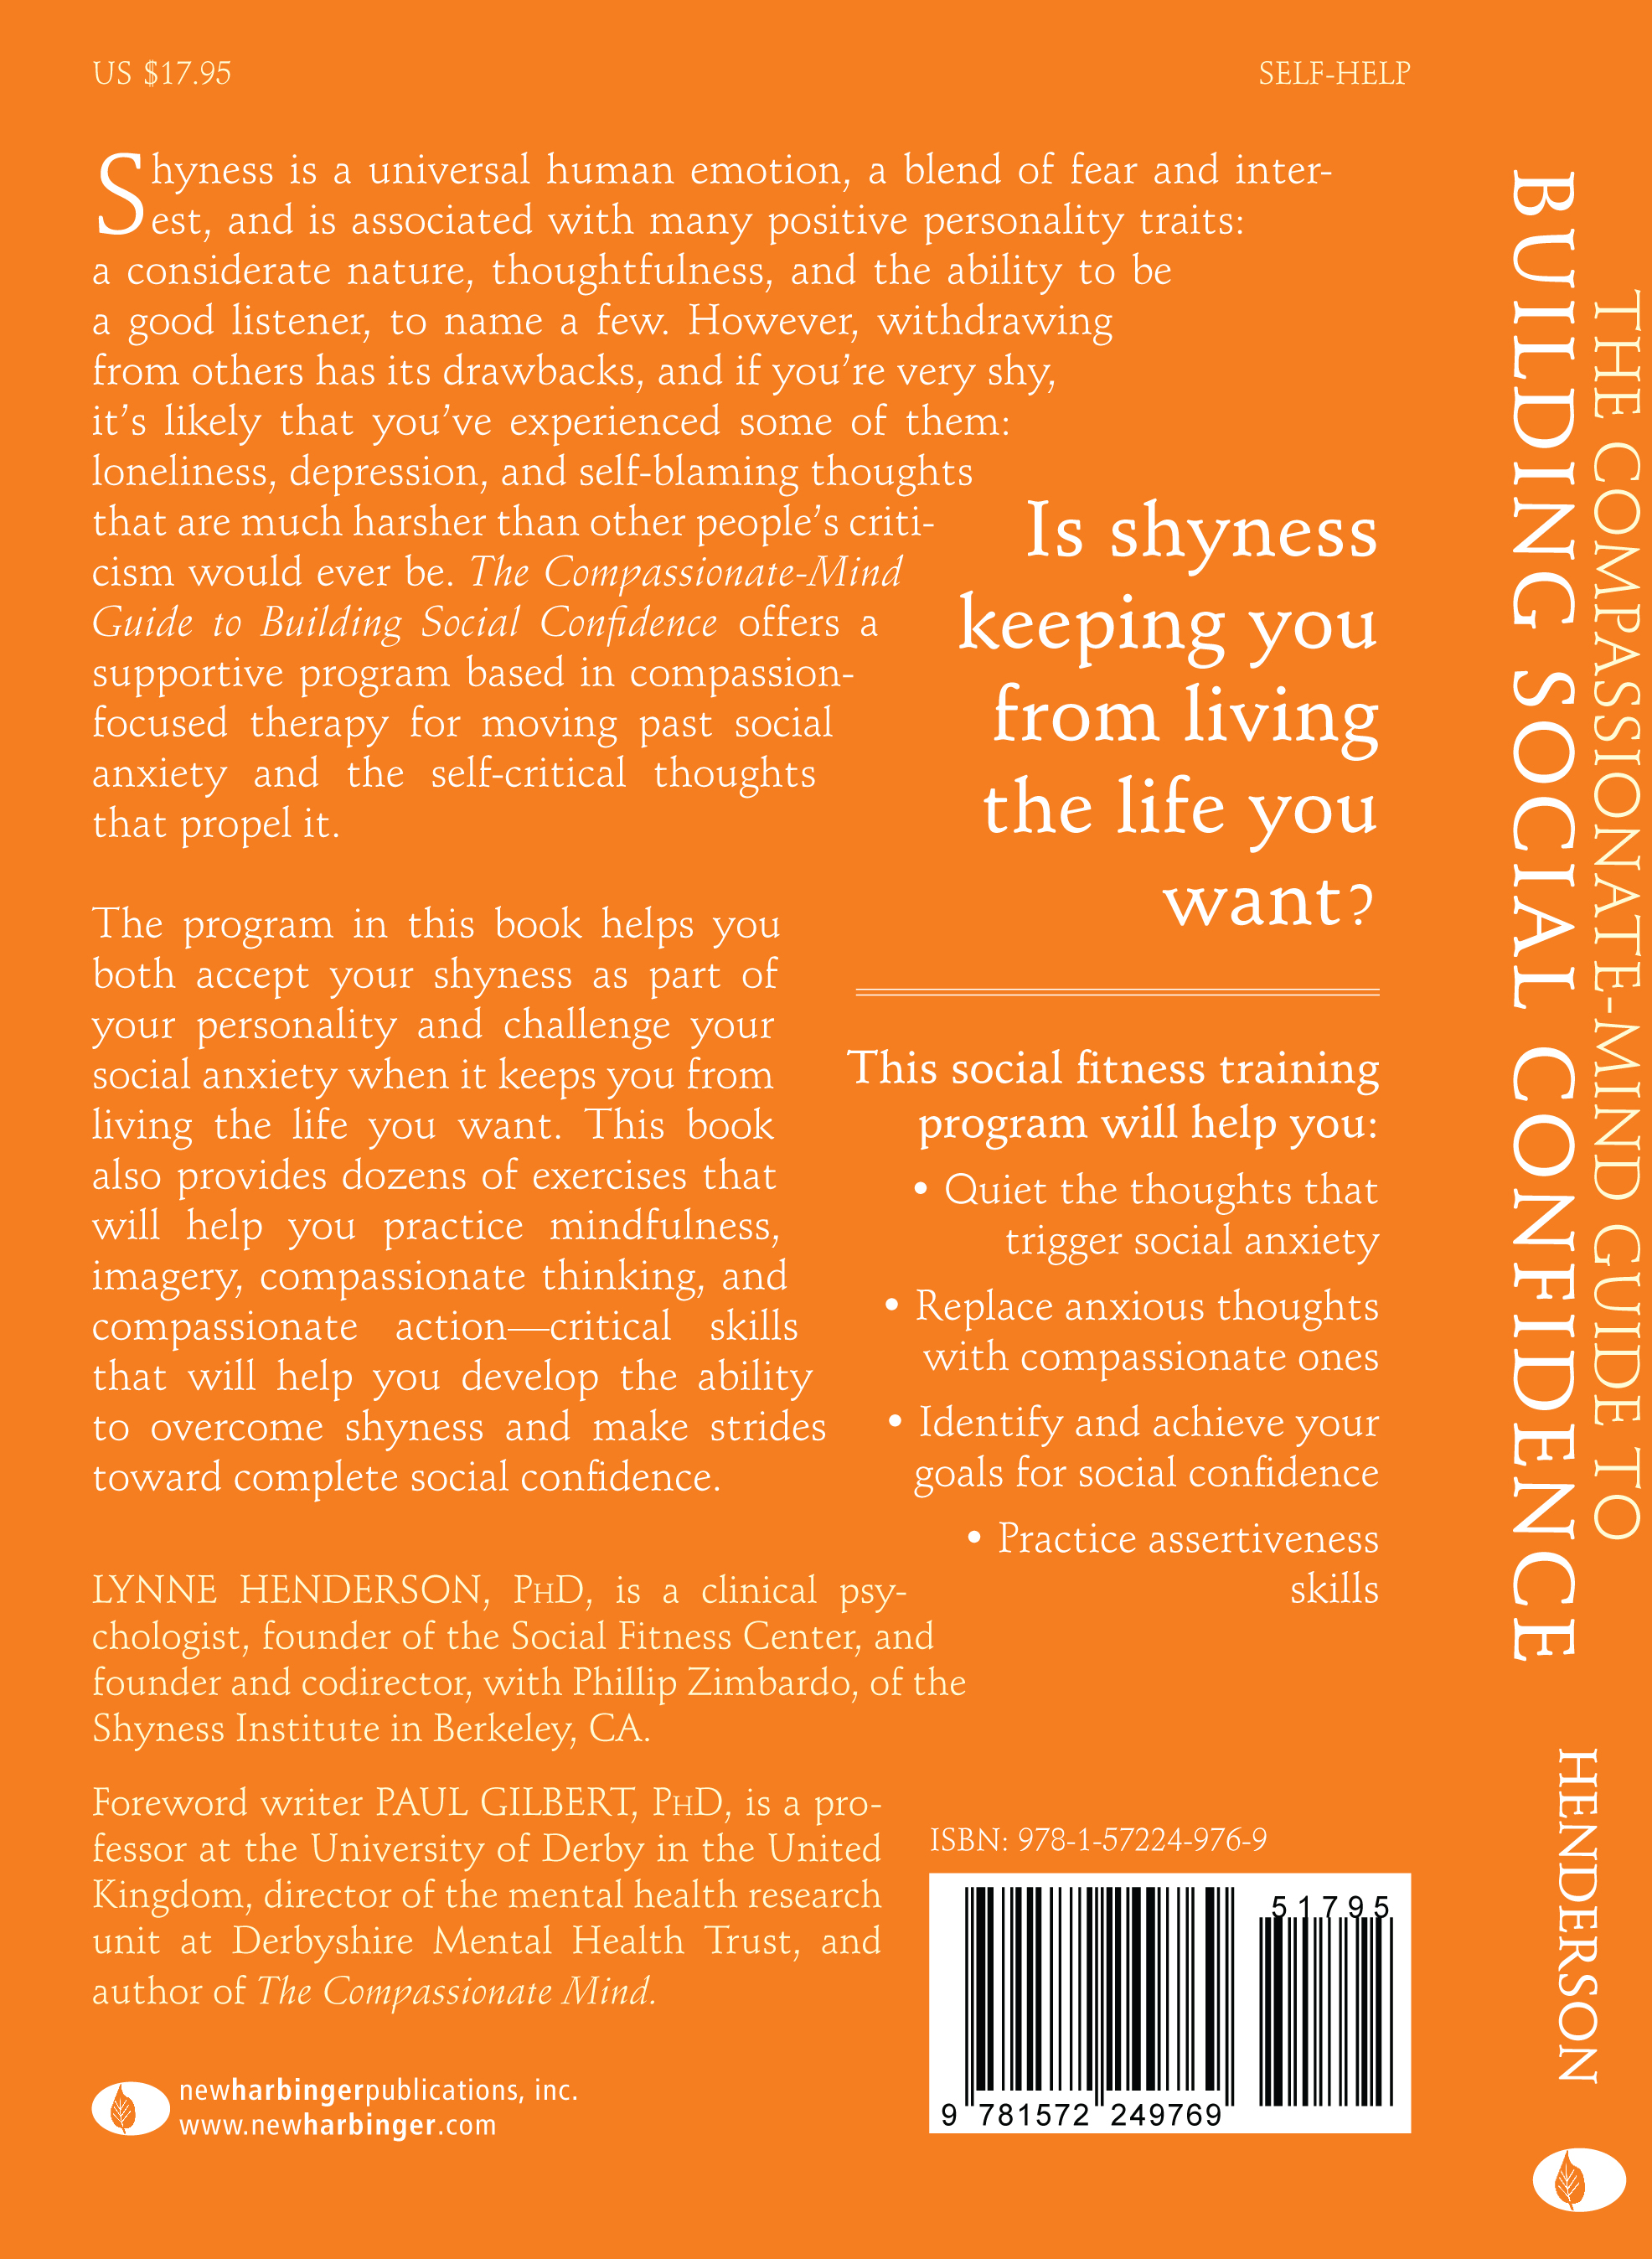 US back cover